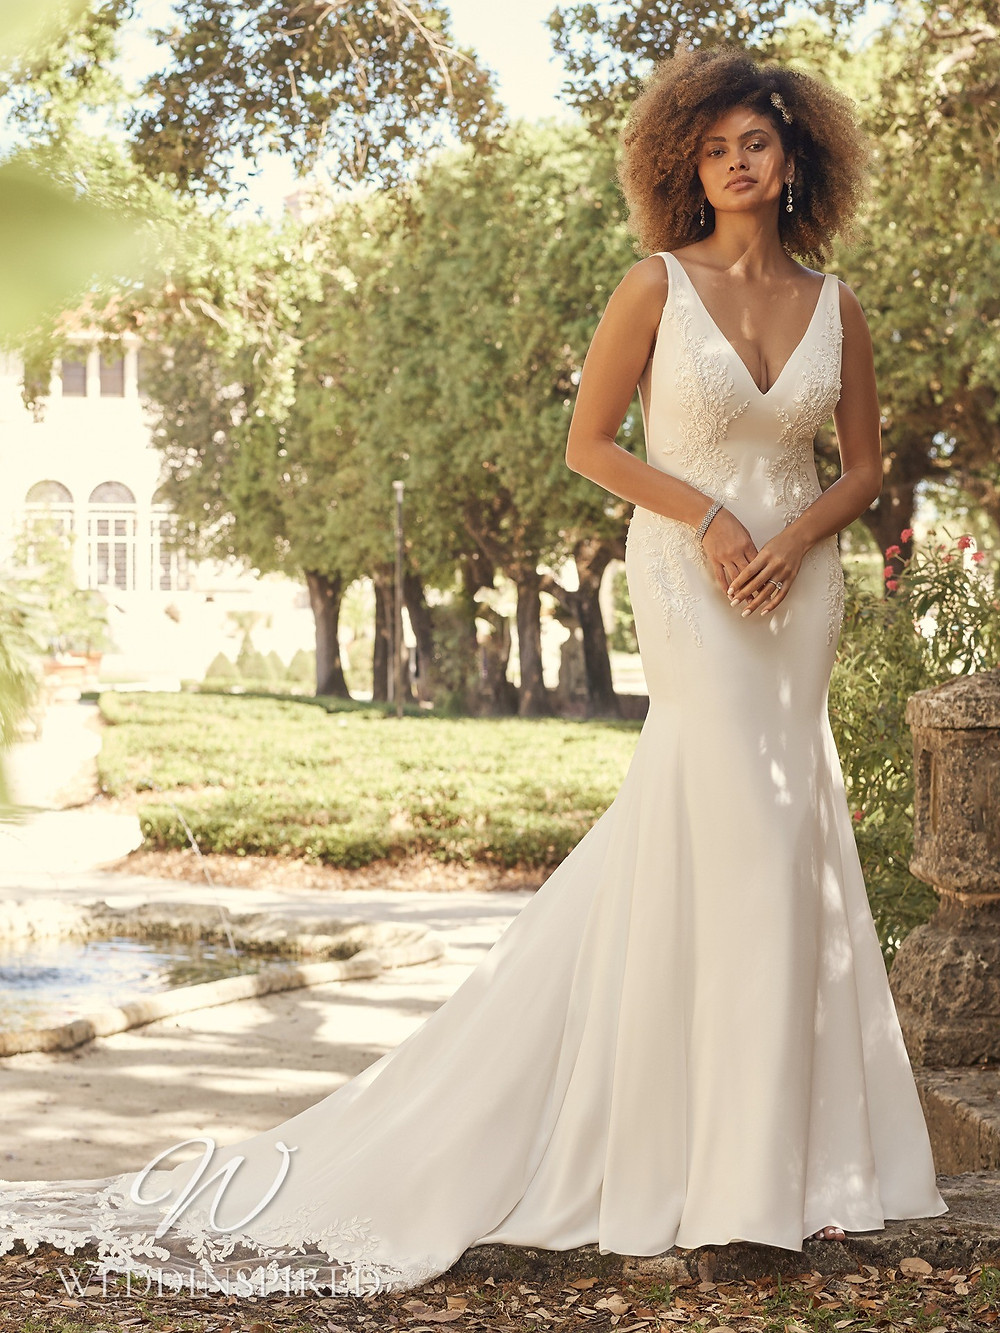 A Maggie Sottero 2021 lace and satin mermaid wedding dress